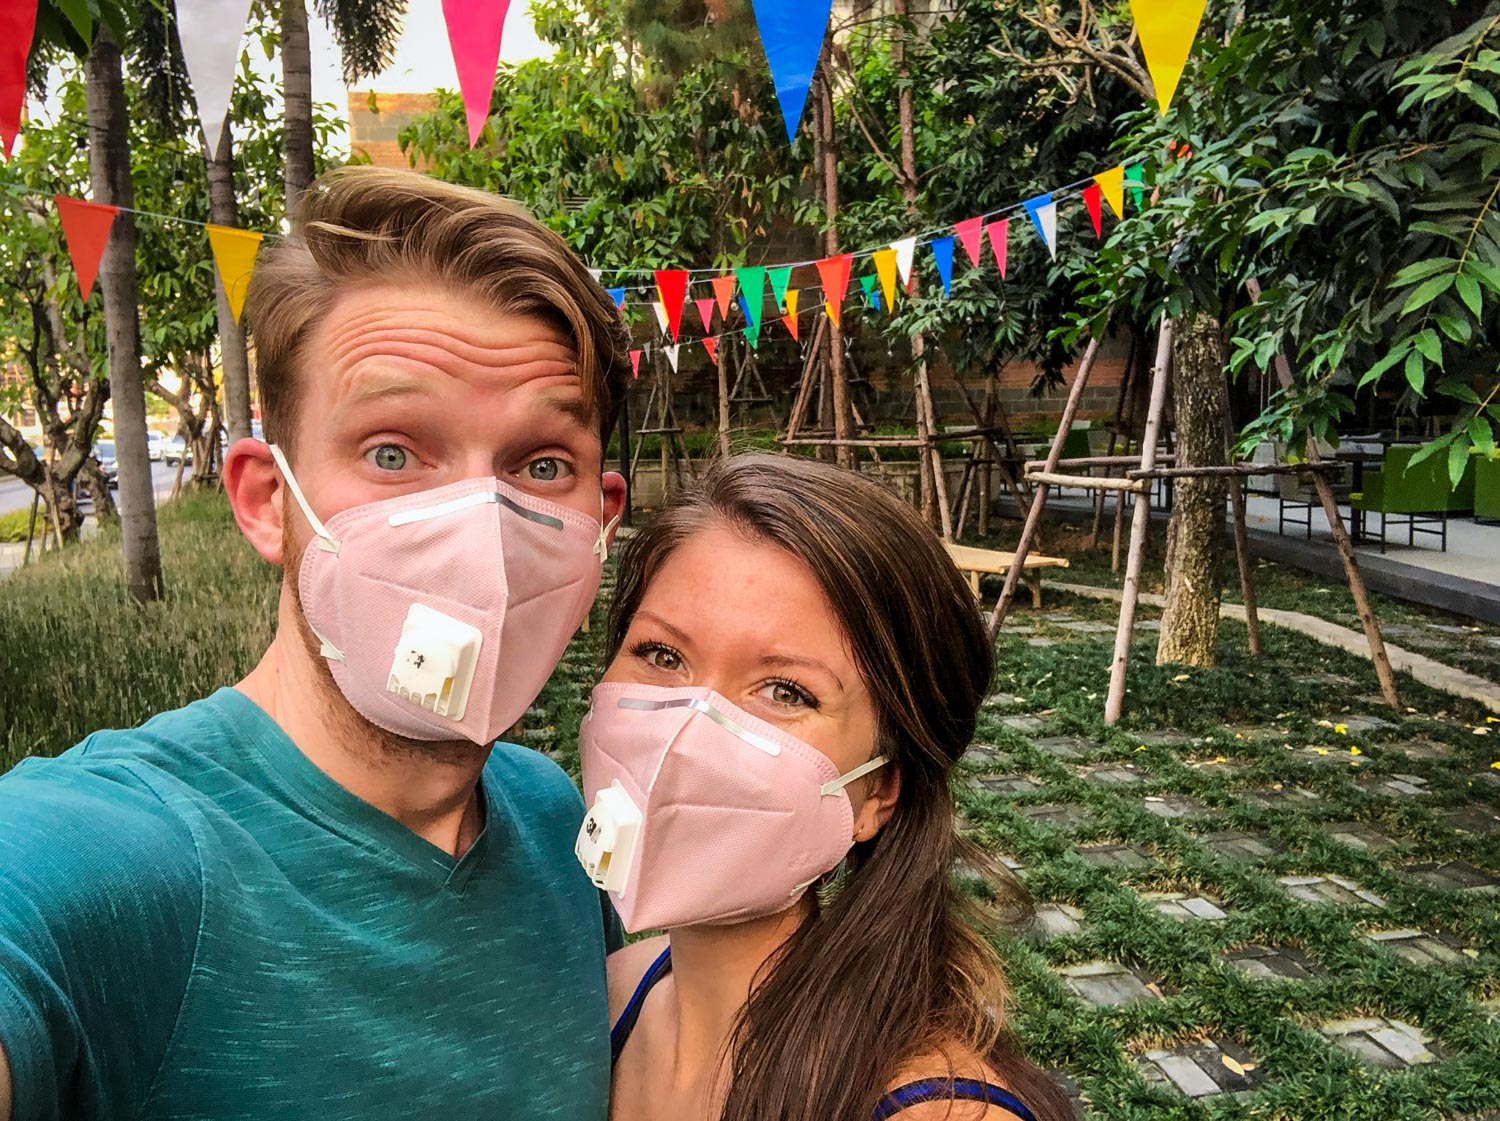 Nepal Travel Guide Bad Air Quality in Kathmandu Masks